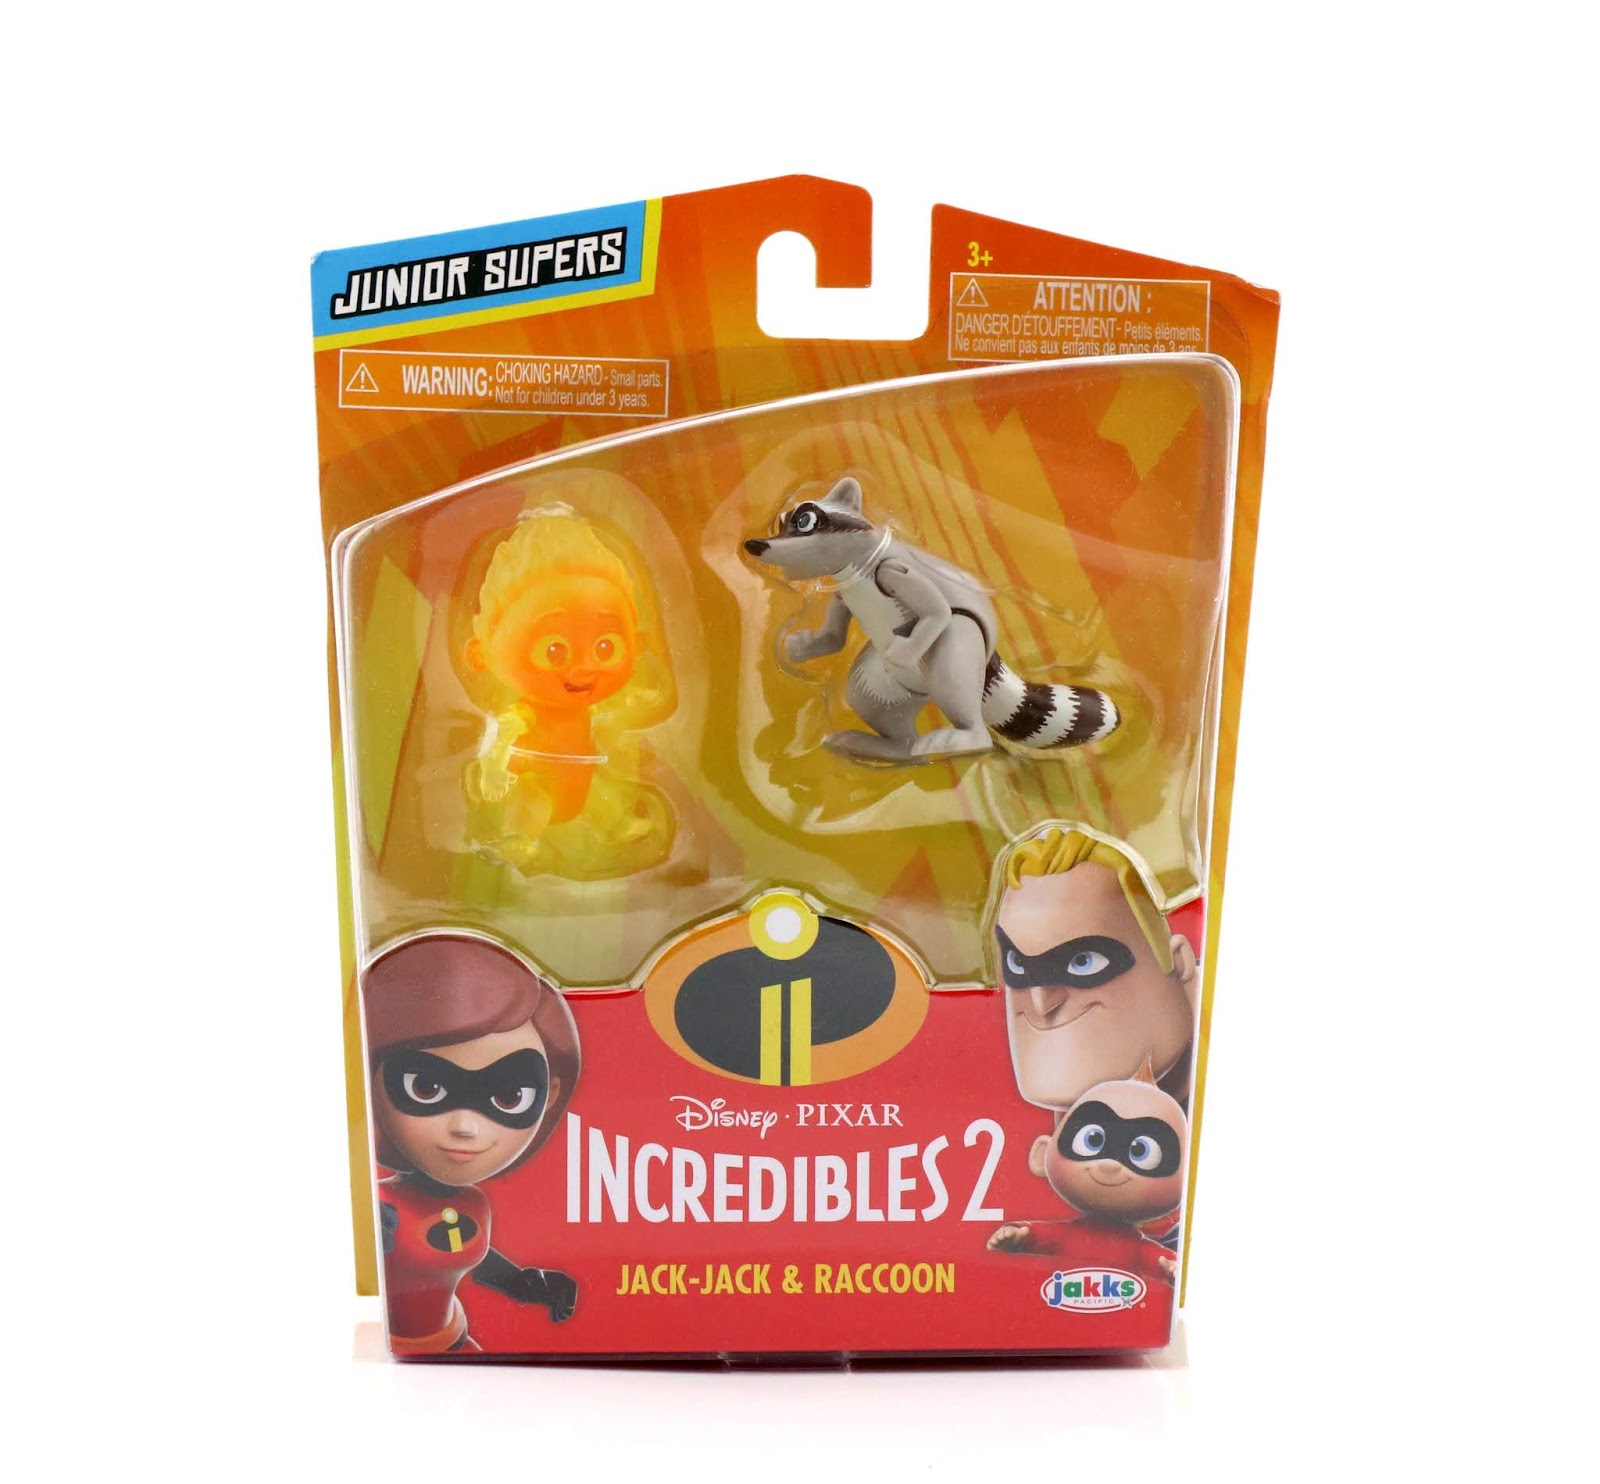 junior supers incredibles 2 jack-jack raccoon